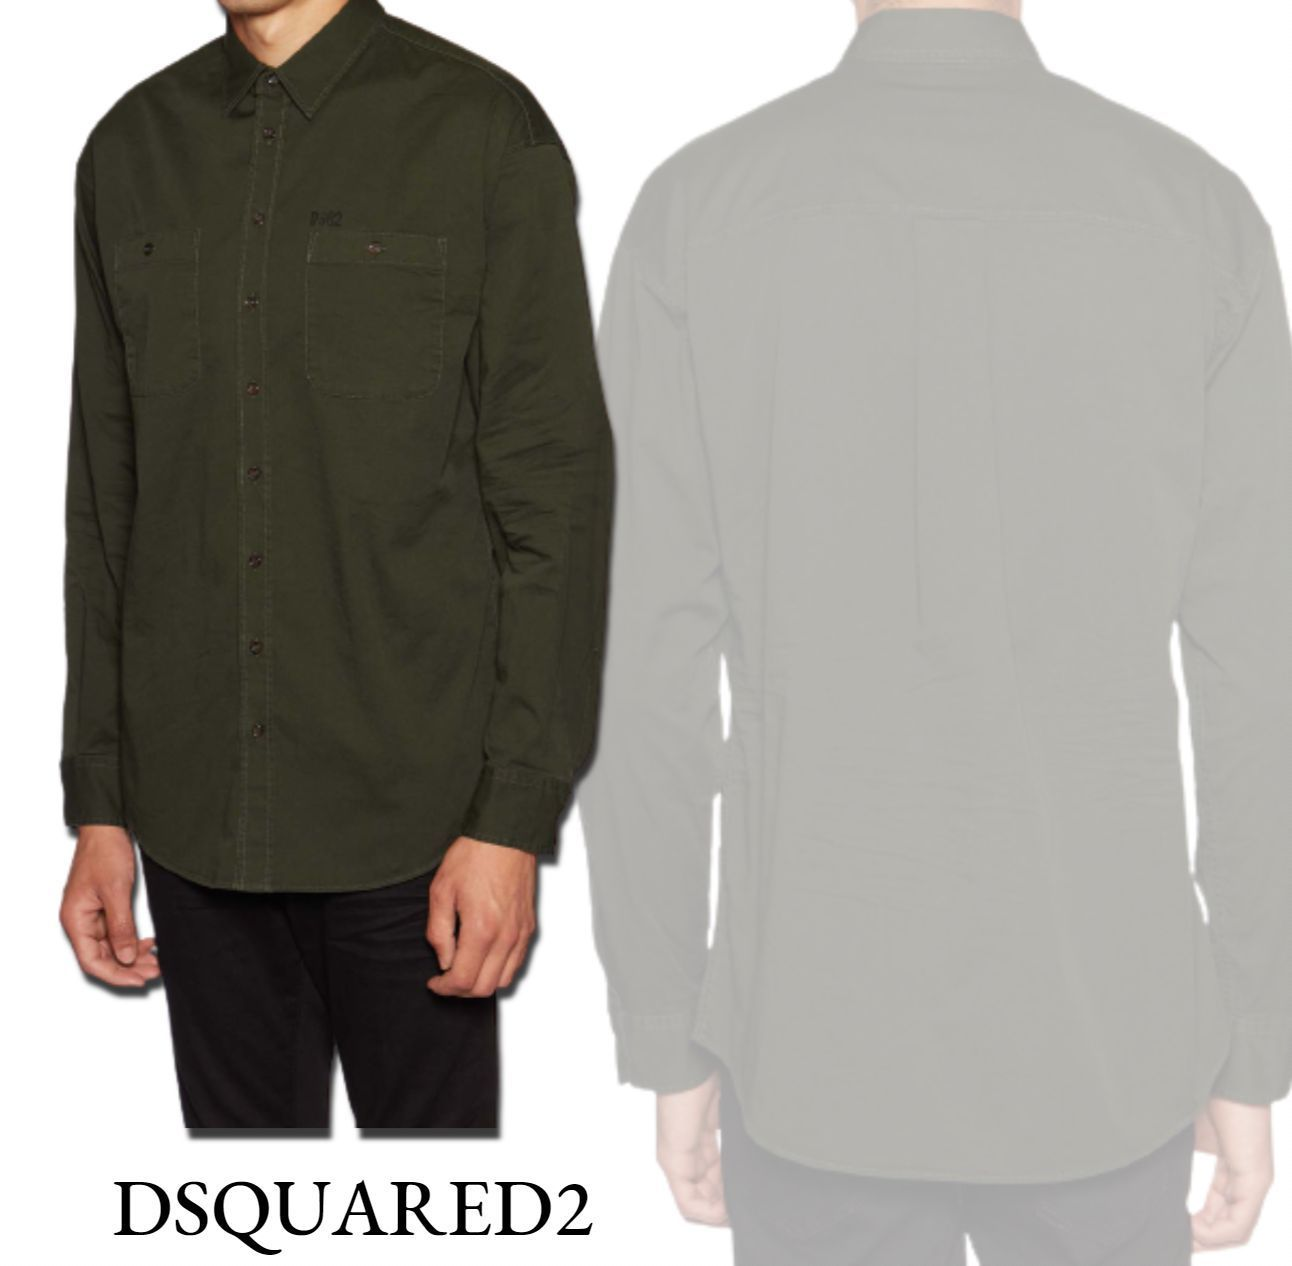 《DSQUARED2》大人気☆ロゴプリント シャツ☆国内発送&関税込 (D SQUARED2/シャツ) 71217891